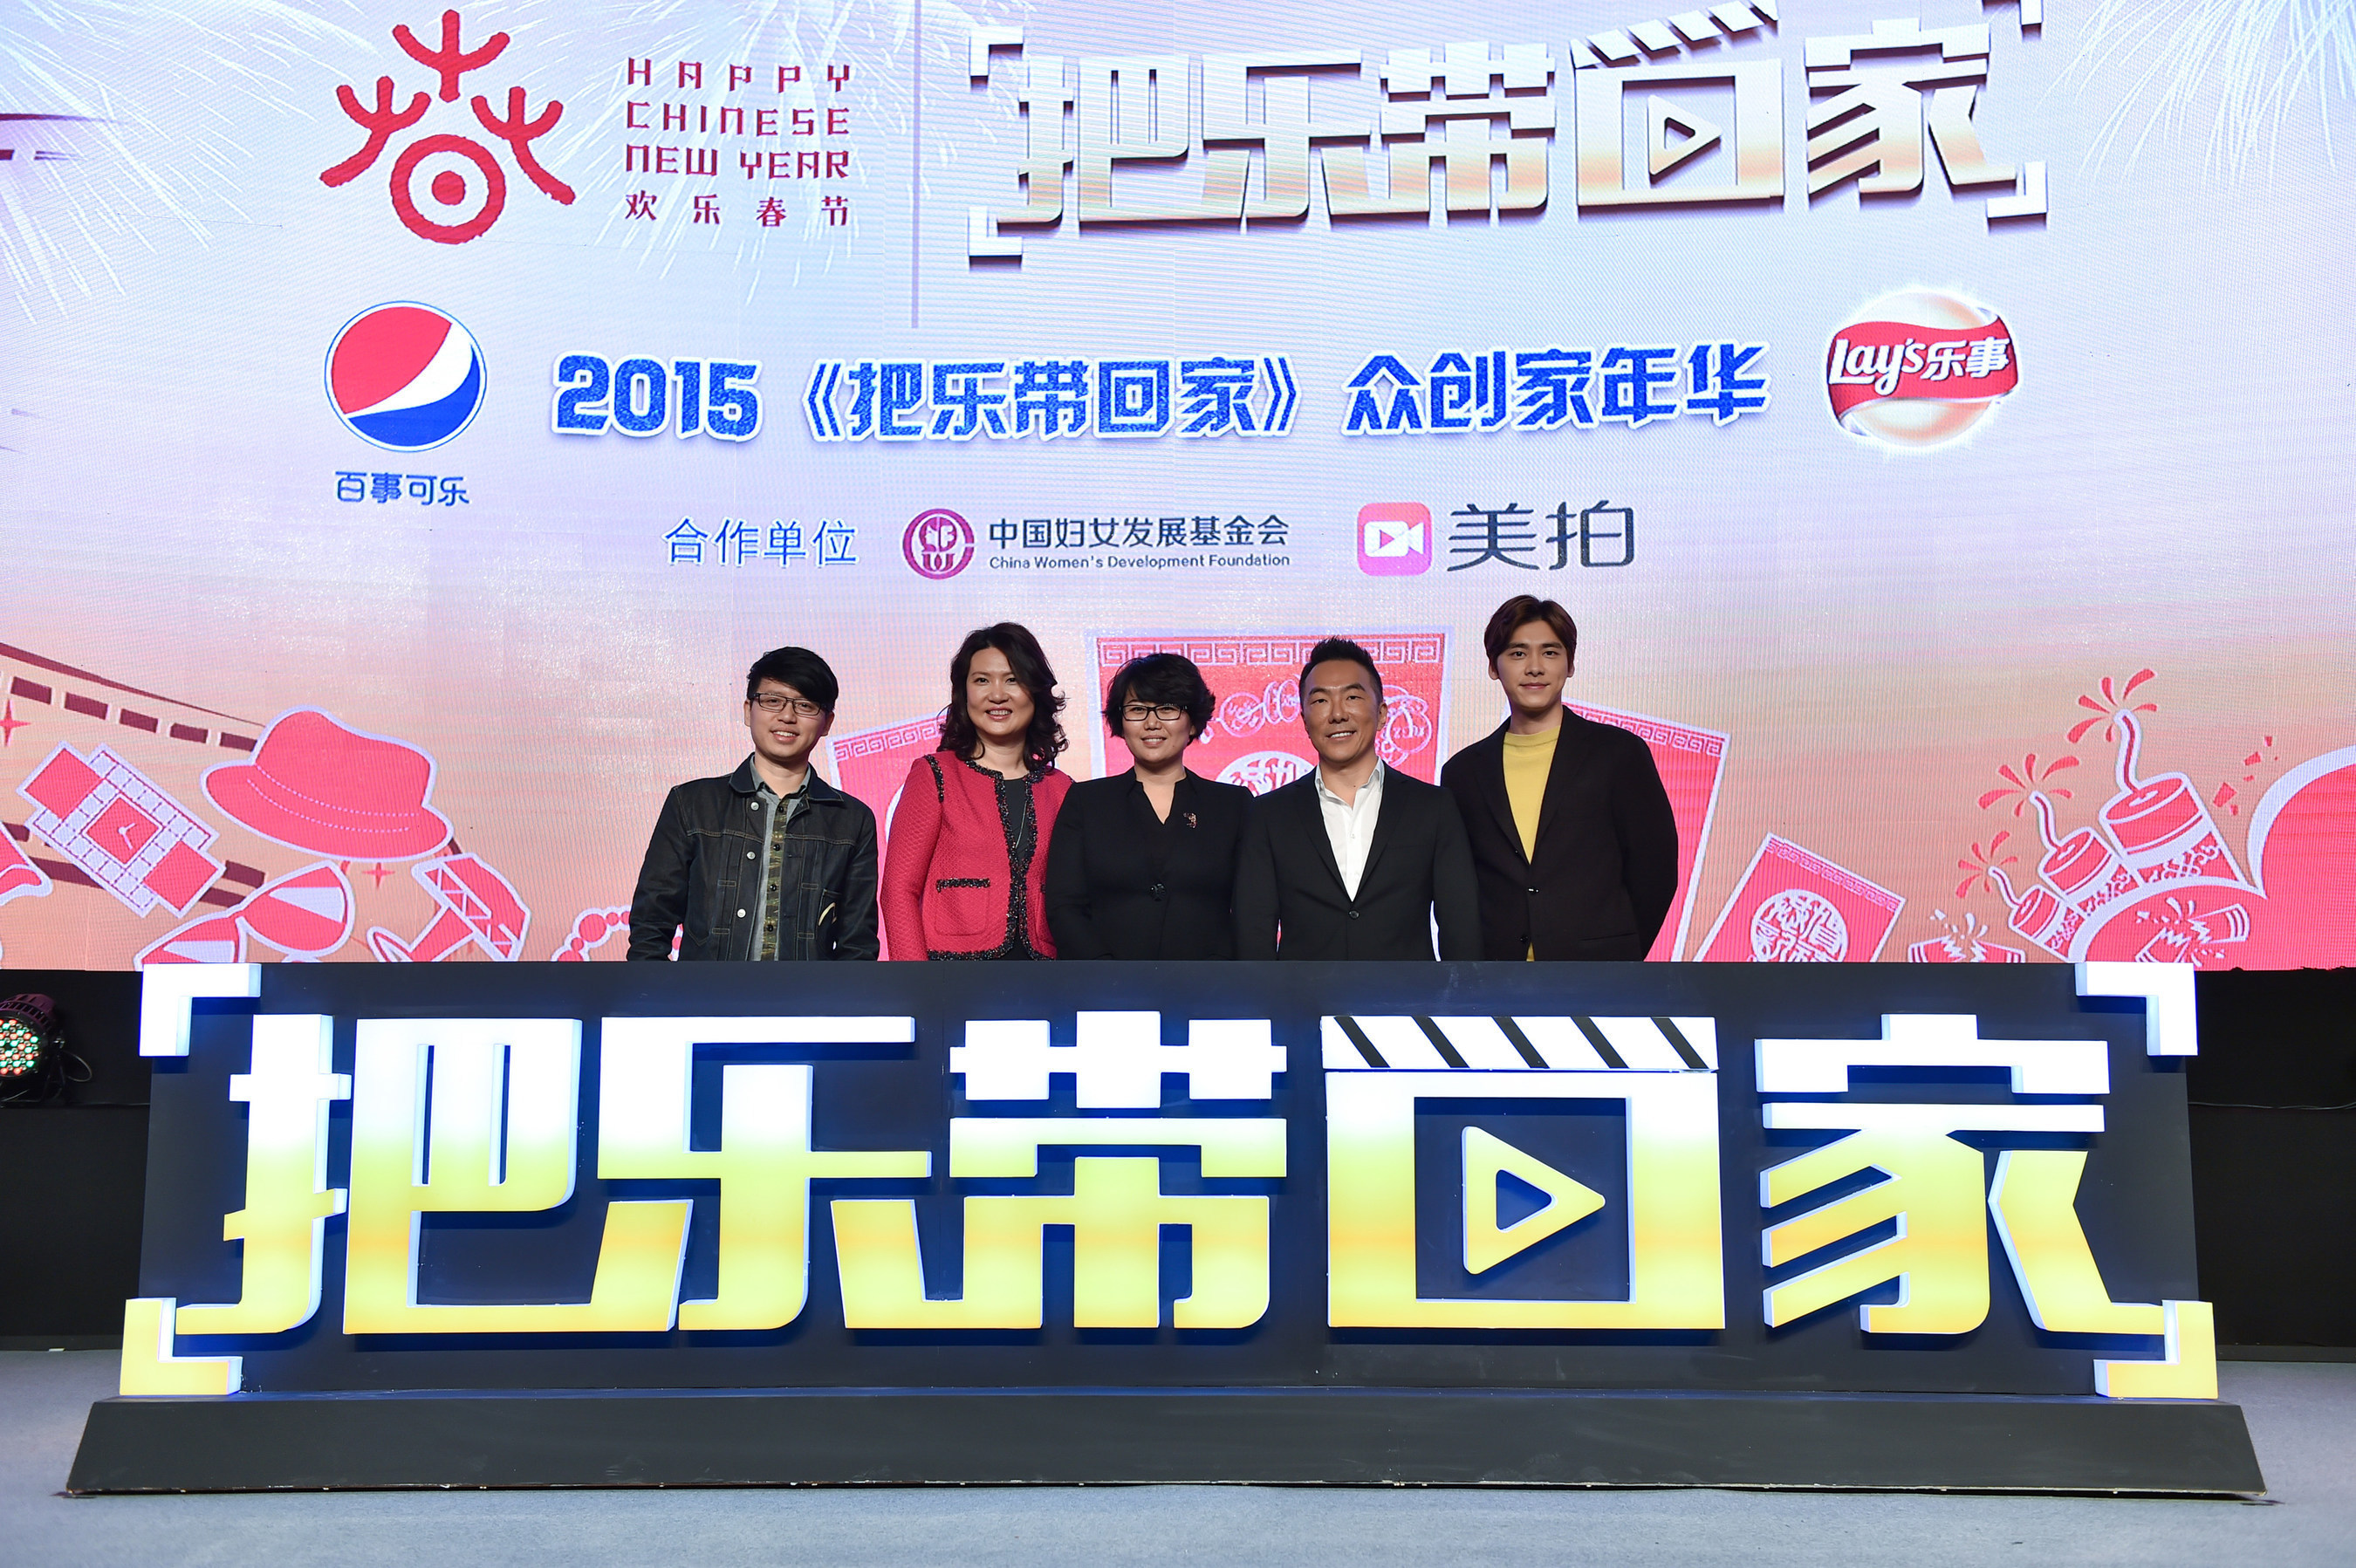 """PepsiCo Launches """"Happy Spring Festival - Bring Happiness Home"""" 2015 Campaign"""